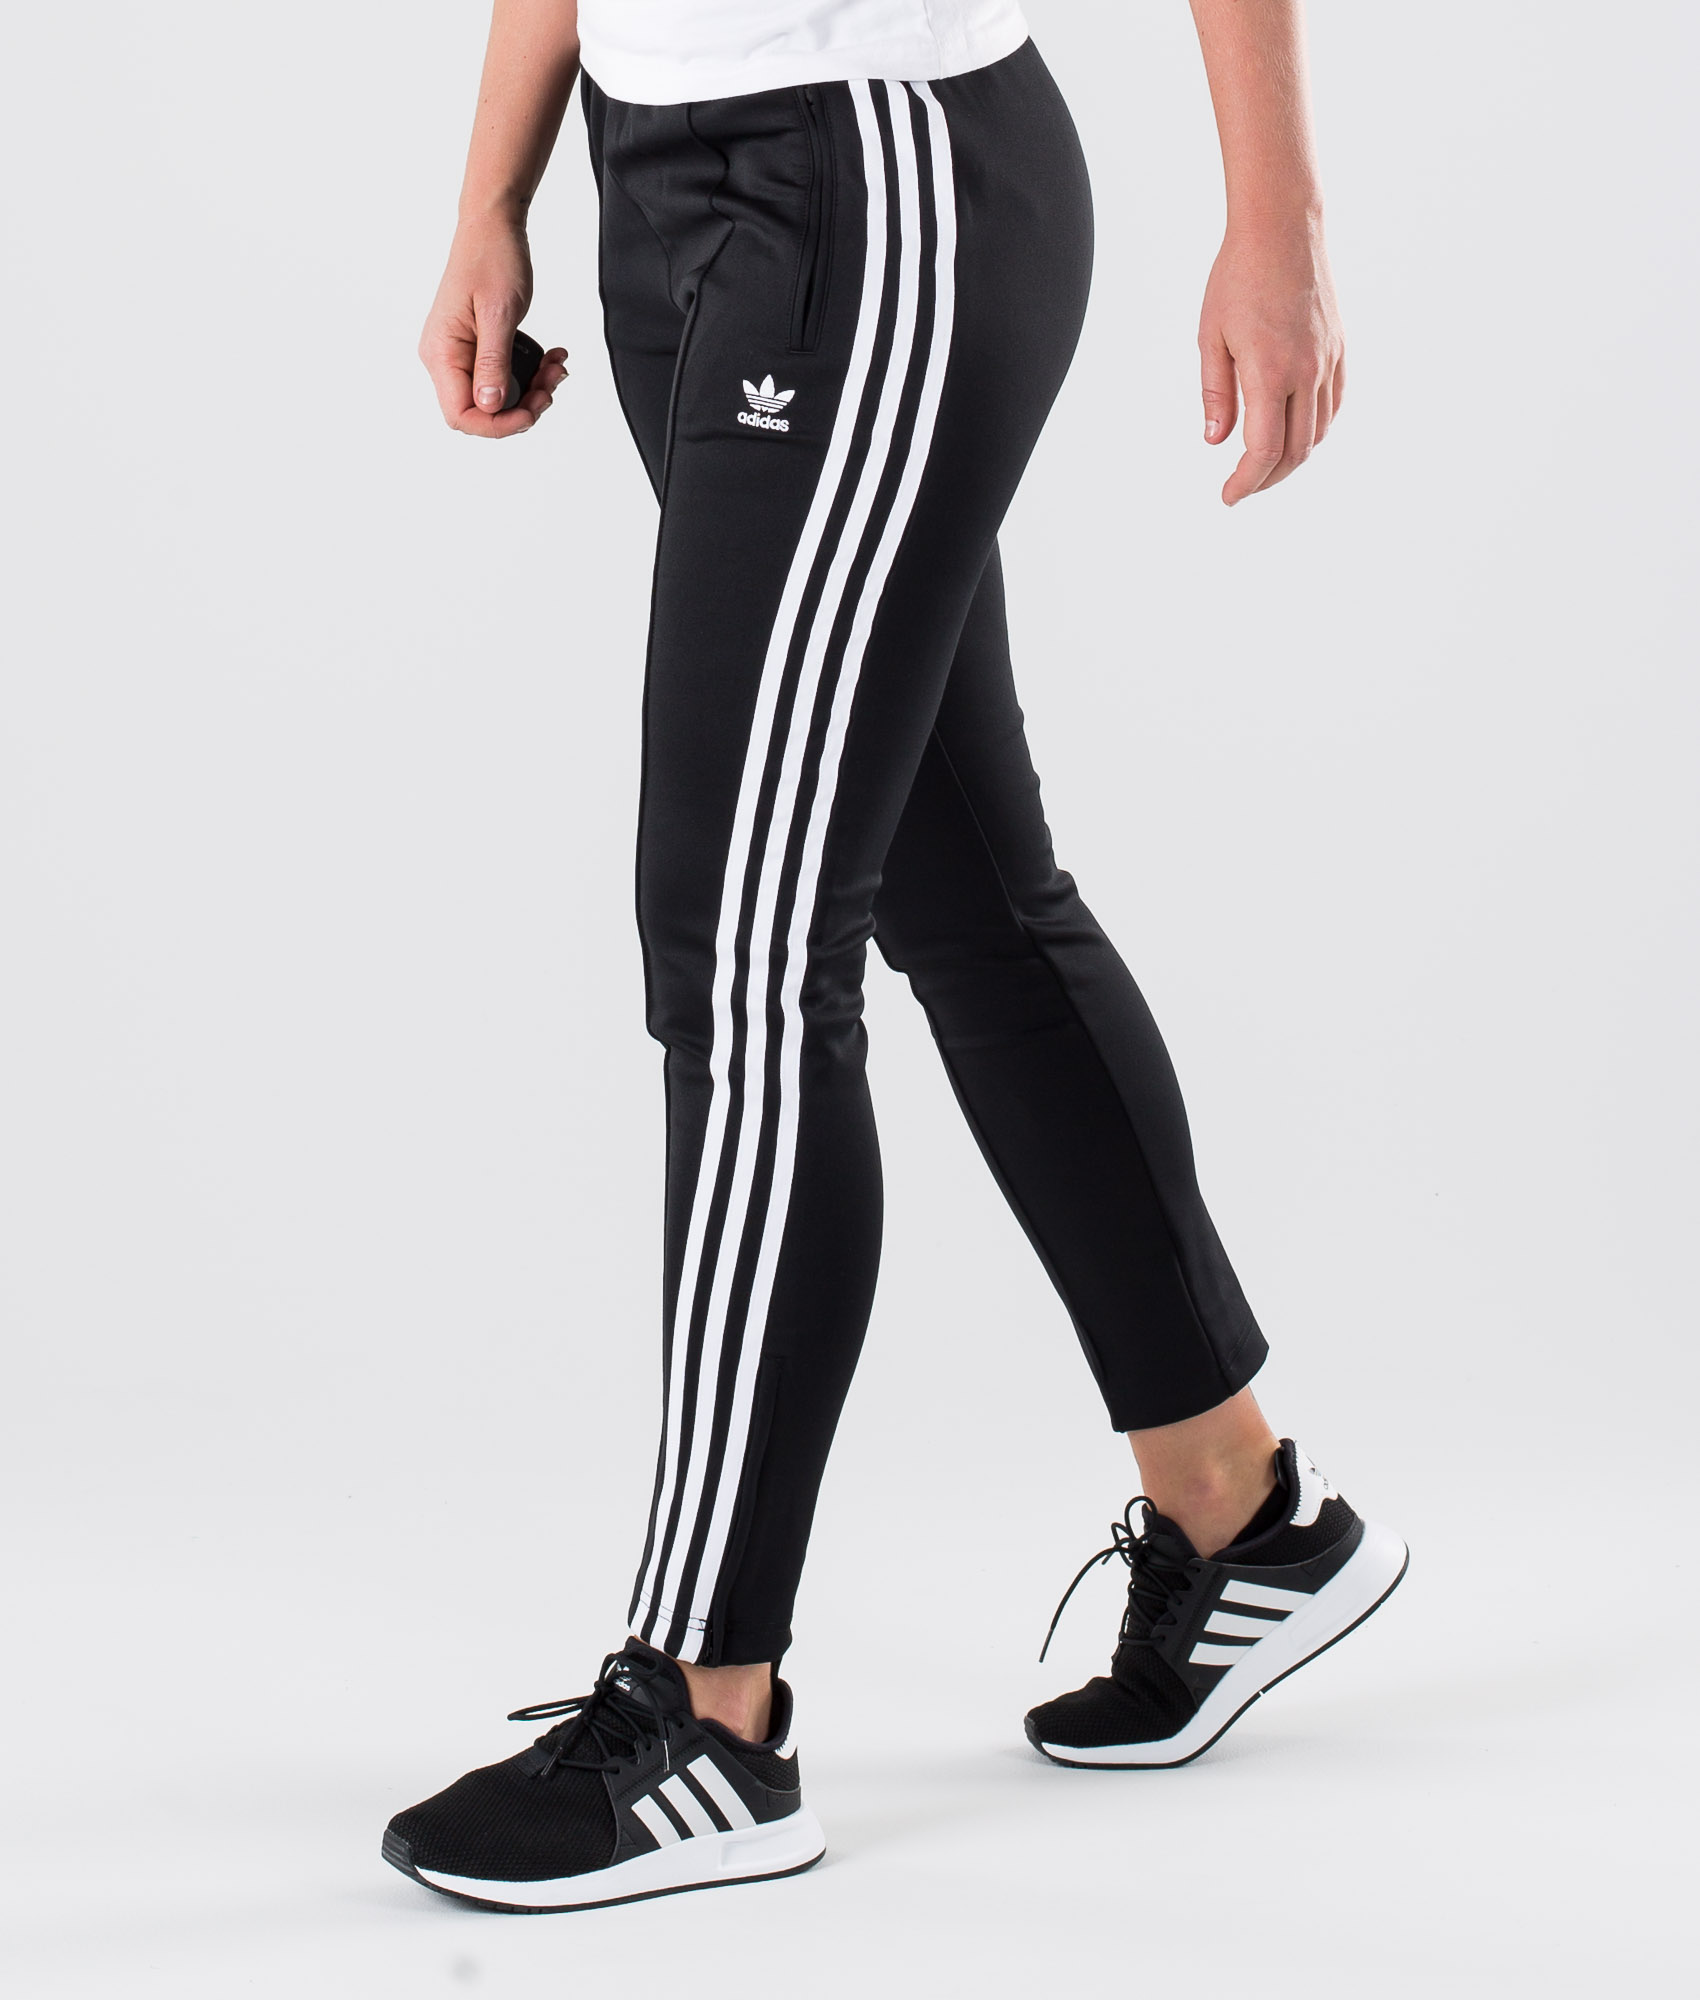 adidas pantaloni all black